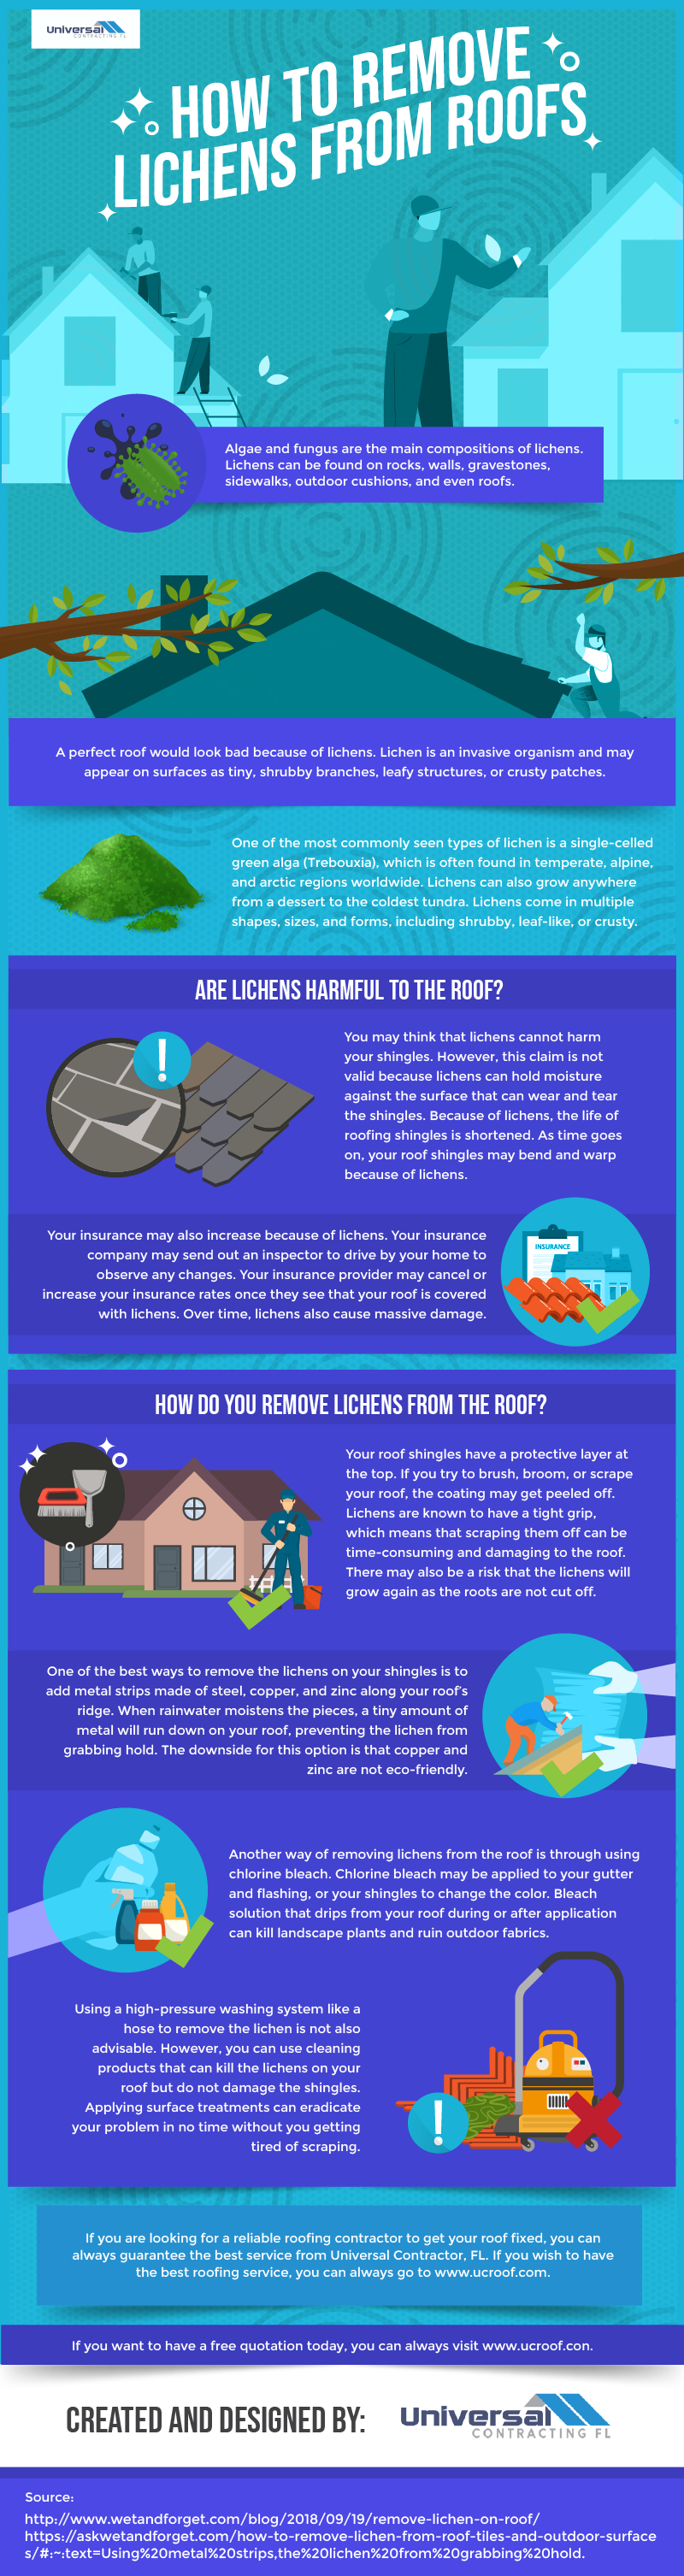 How to remove lichens from roofs